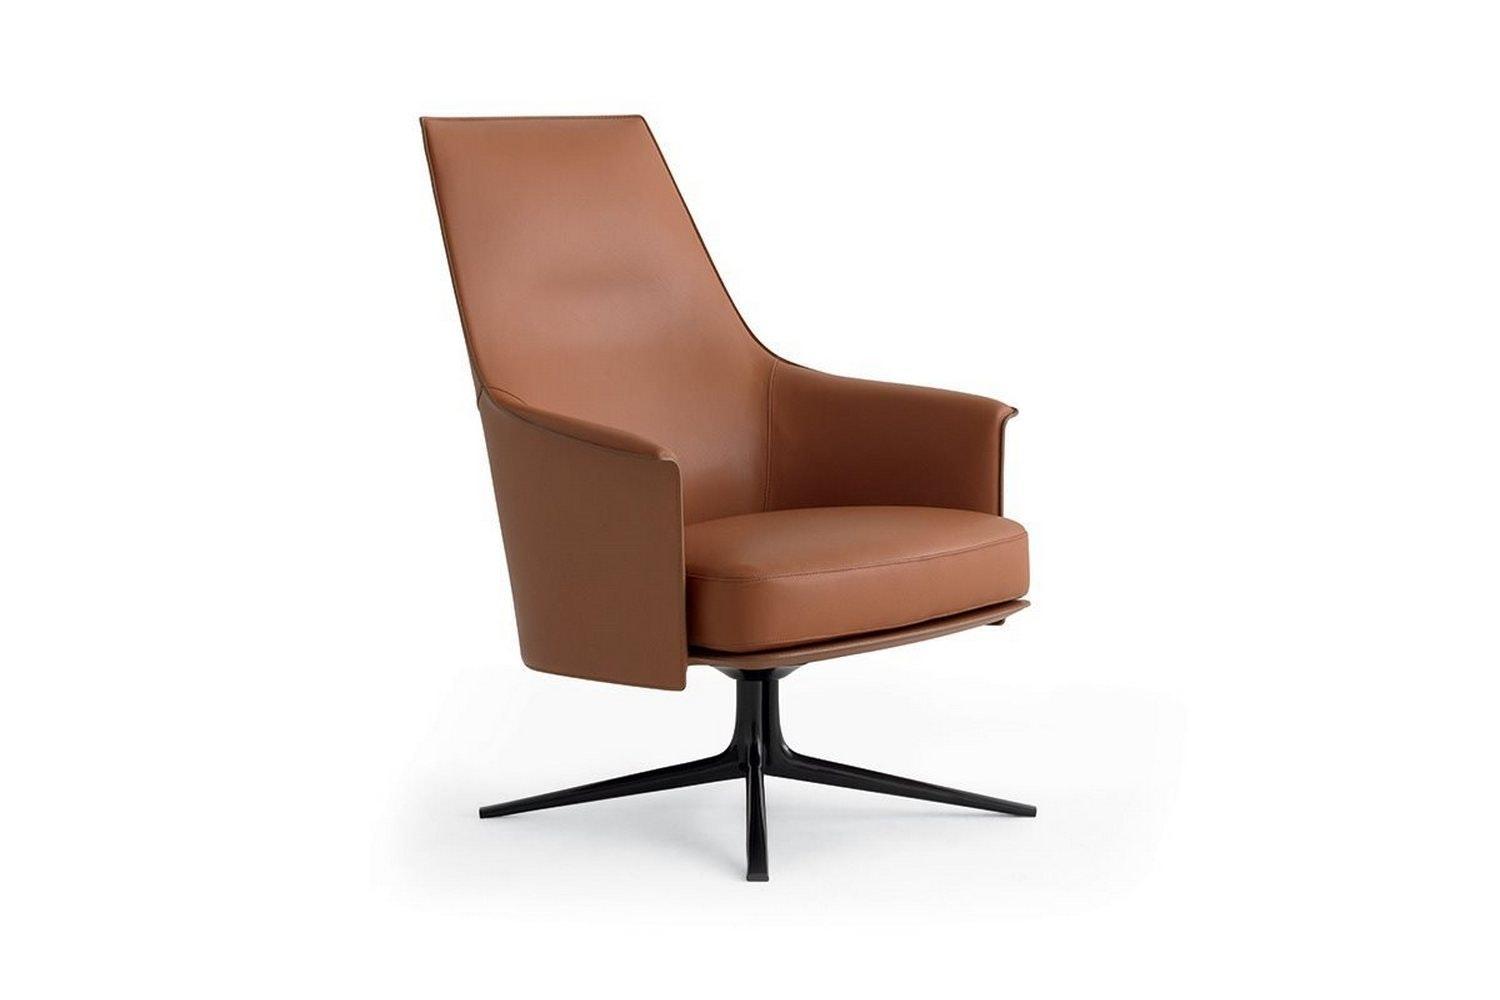 Stanford Lounge Armchair by J. M. Massaud for Poliform